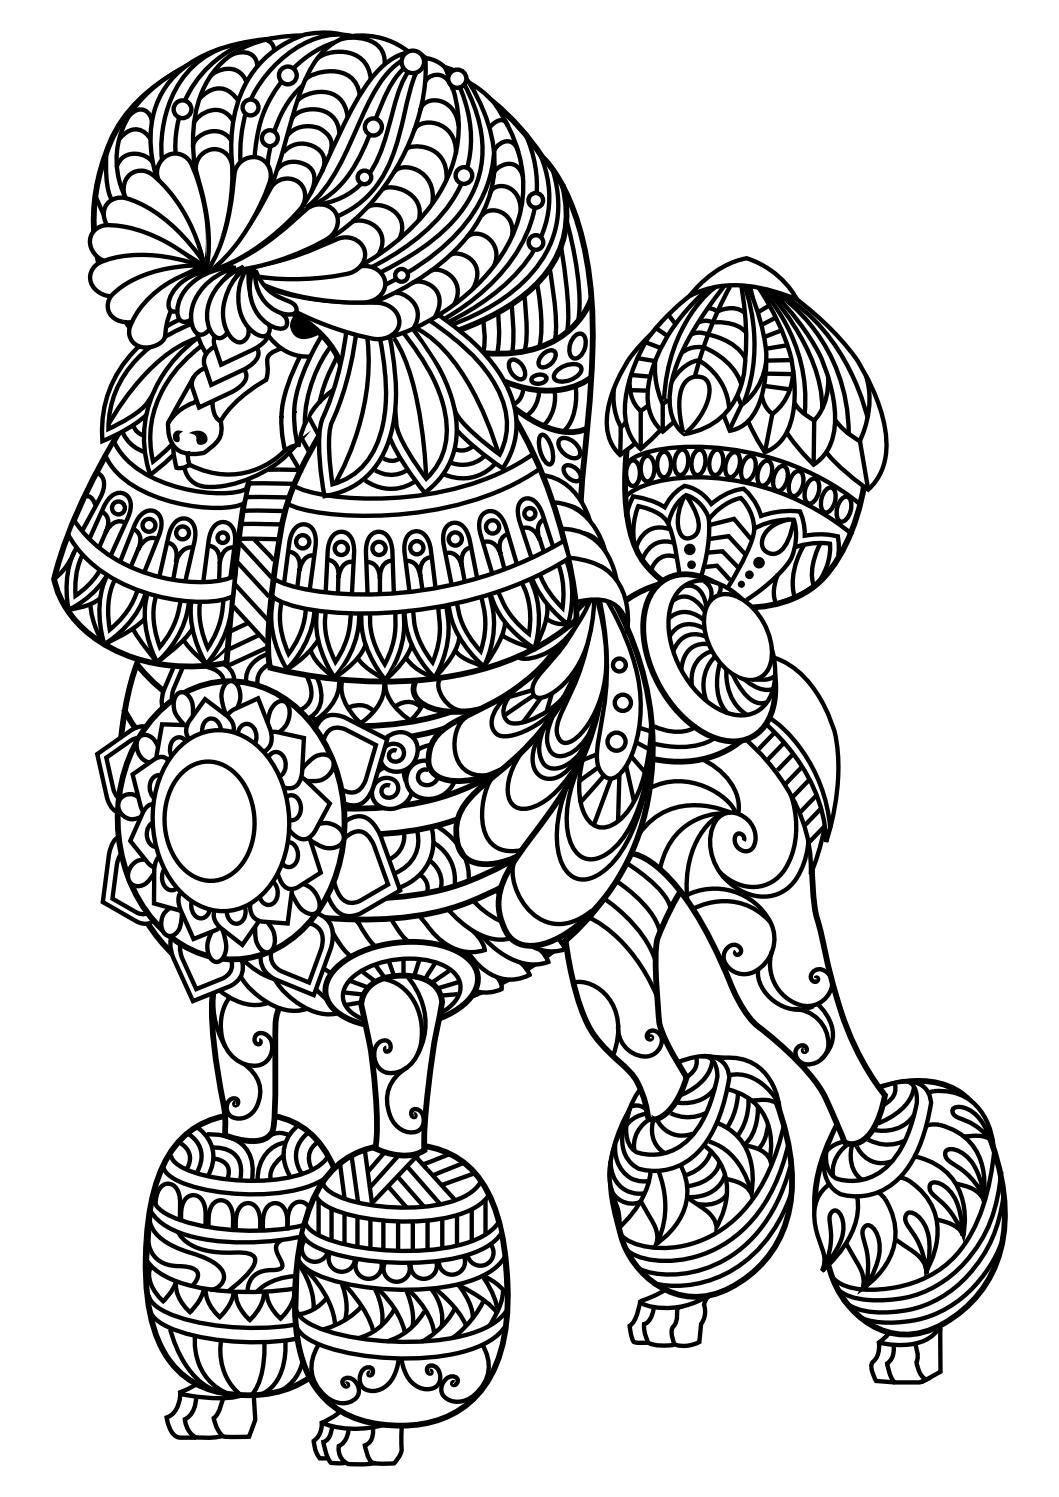 Animal Coloring Pages Pdf Dog Coloring Page Mandala Coloring